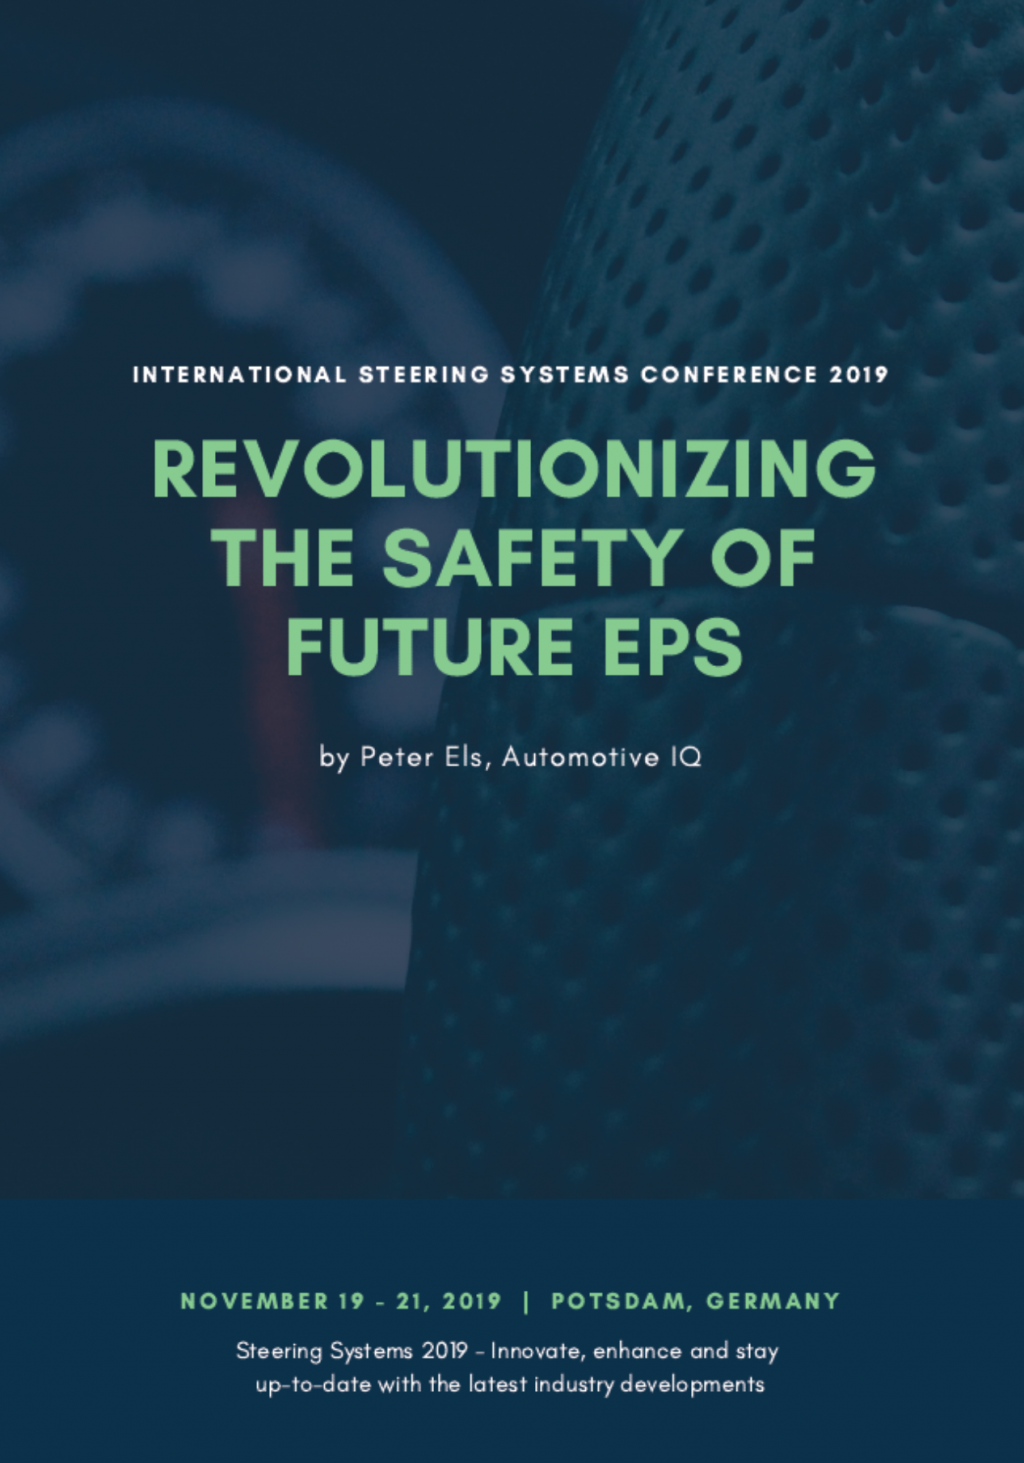 Report on Revolutionizing the Safety of Future EPS